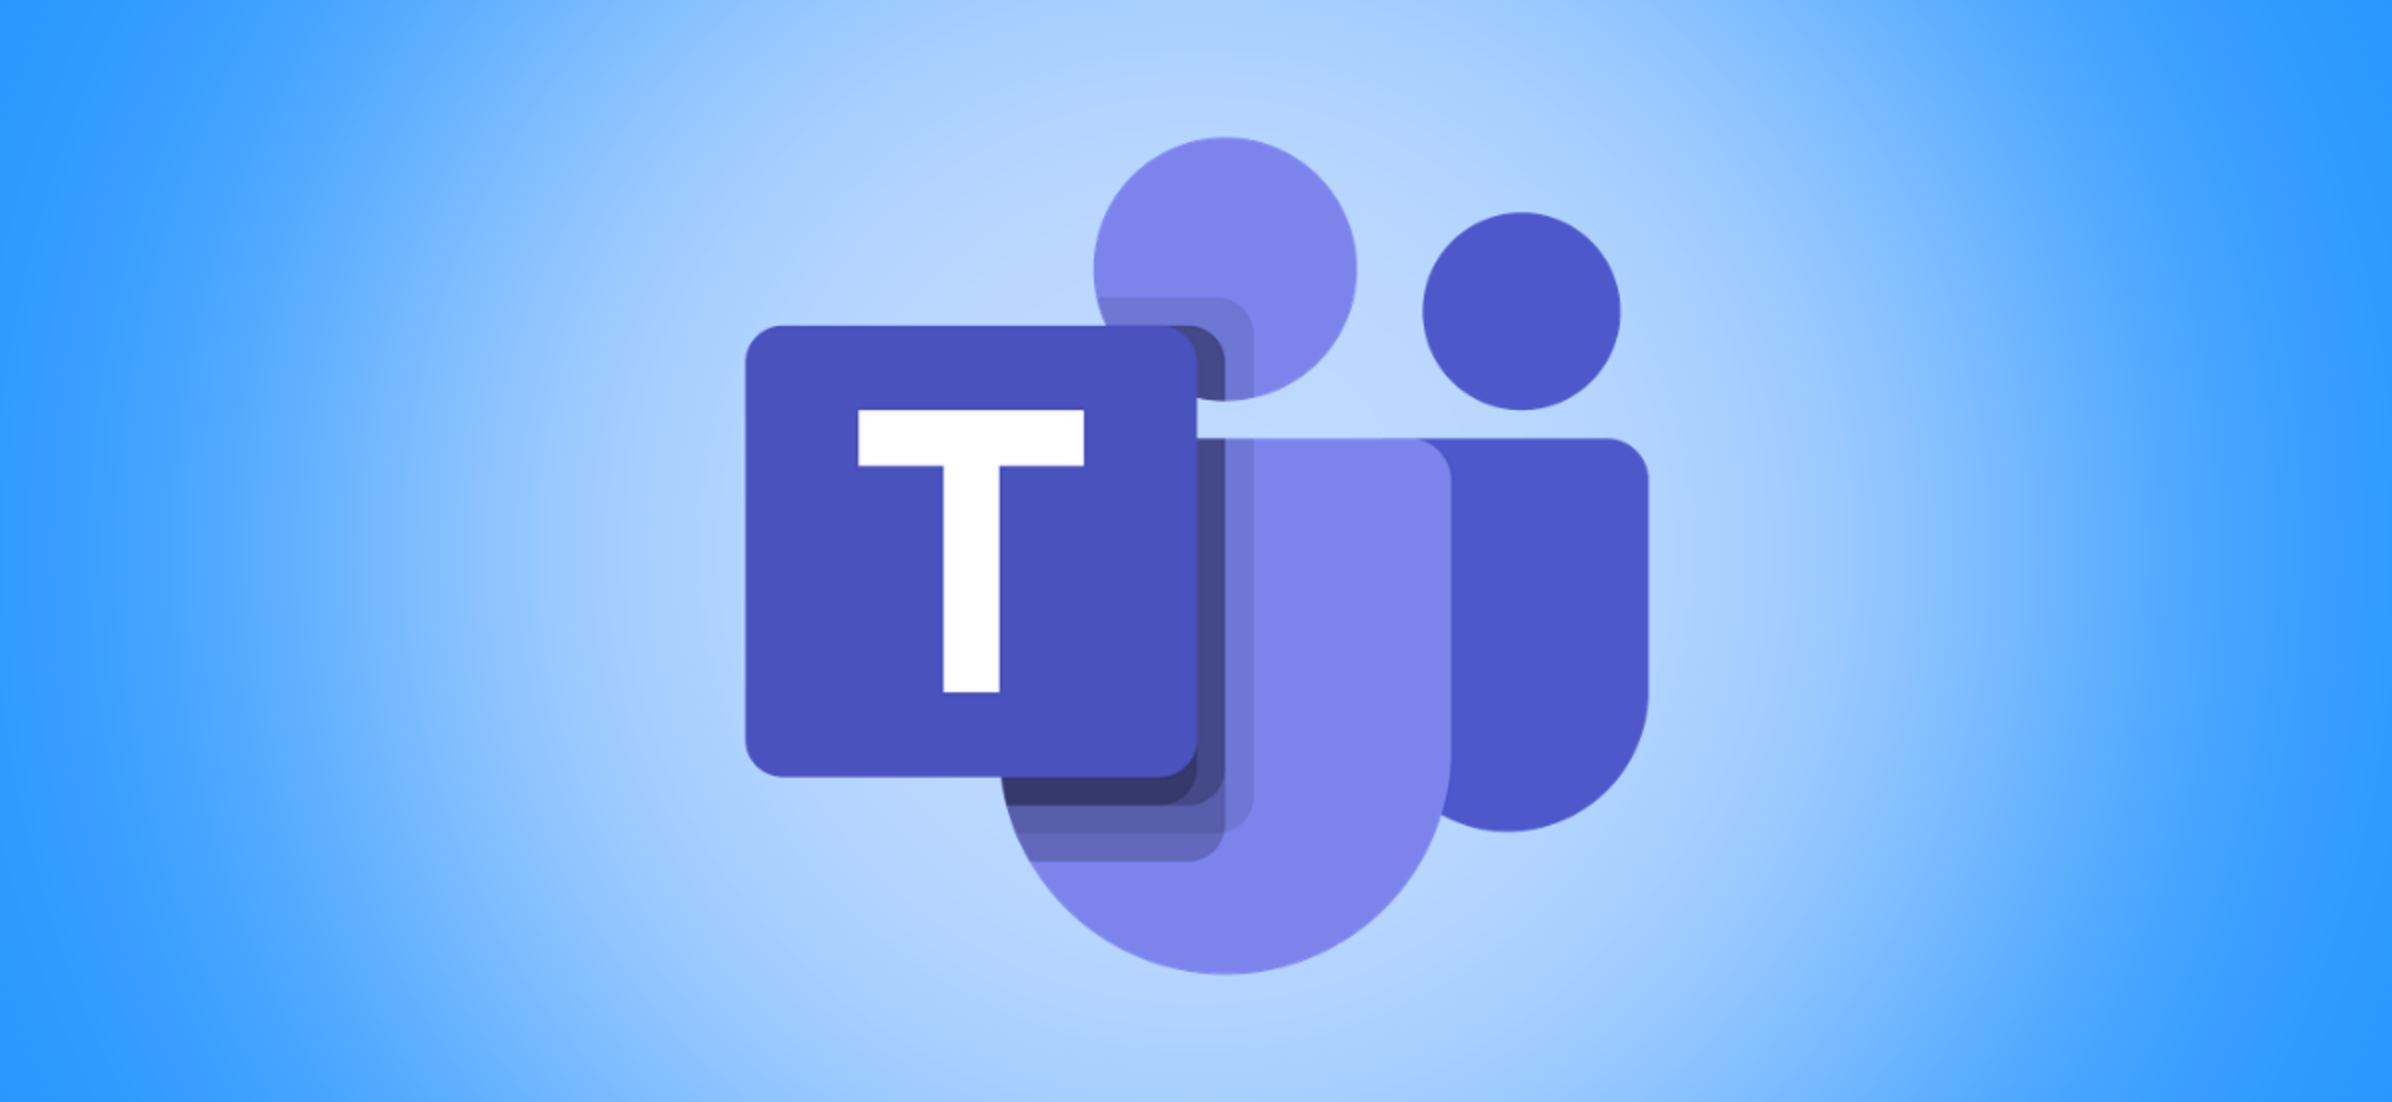 How to Close Microsoft Teams Completely When You Close the App